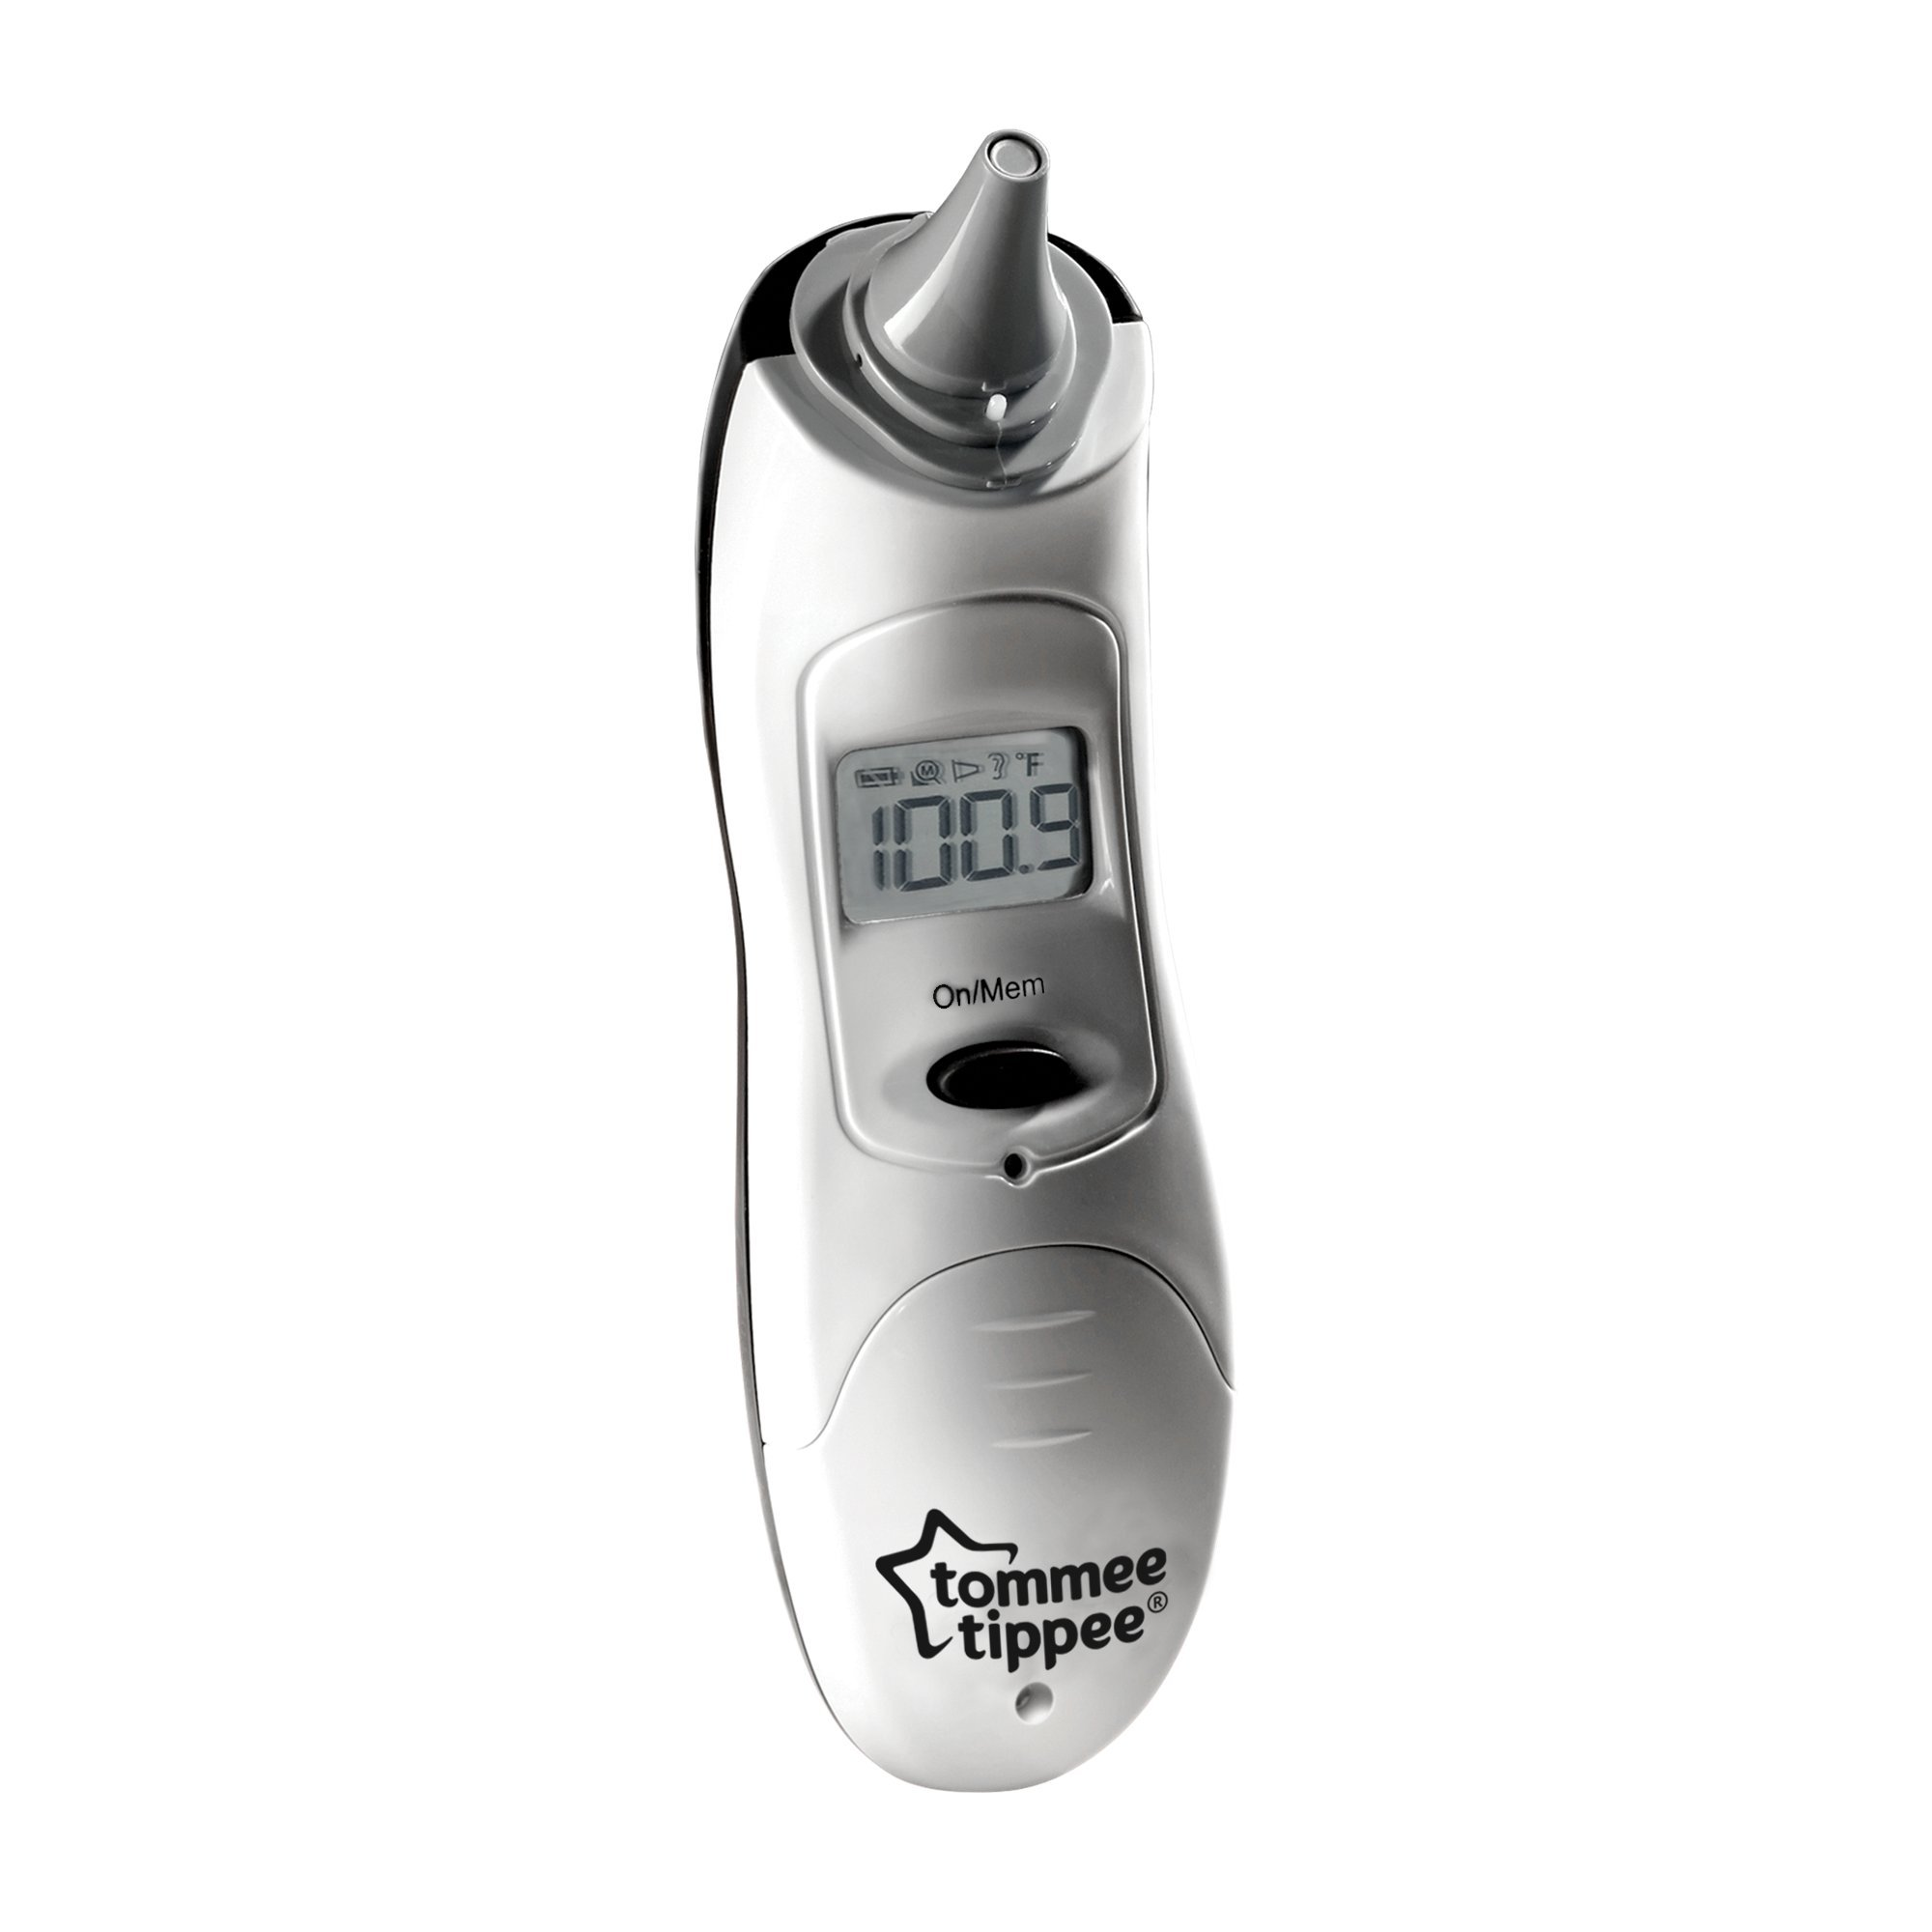 Tommee Tippee Digital, Easy Read & Non-Intrusive, Small Tip Ear Thermometer